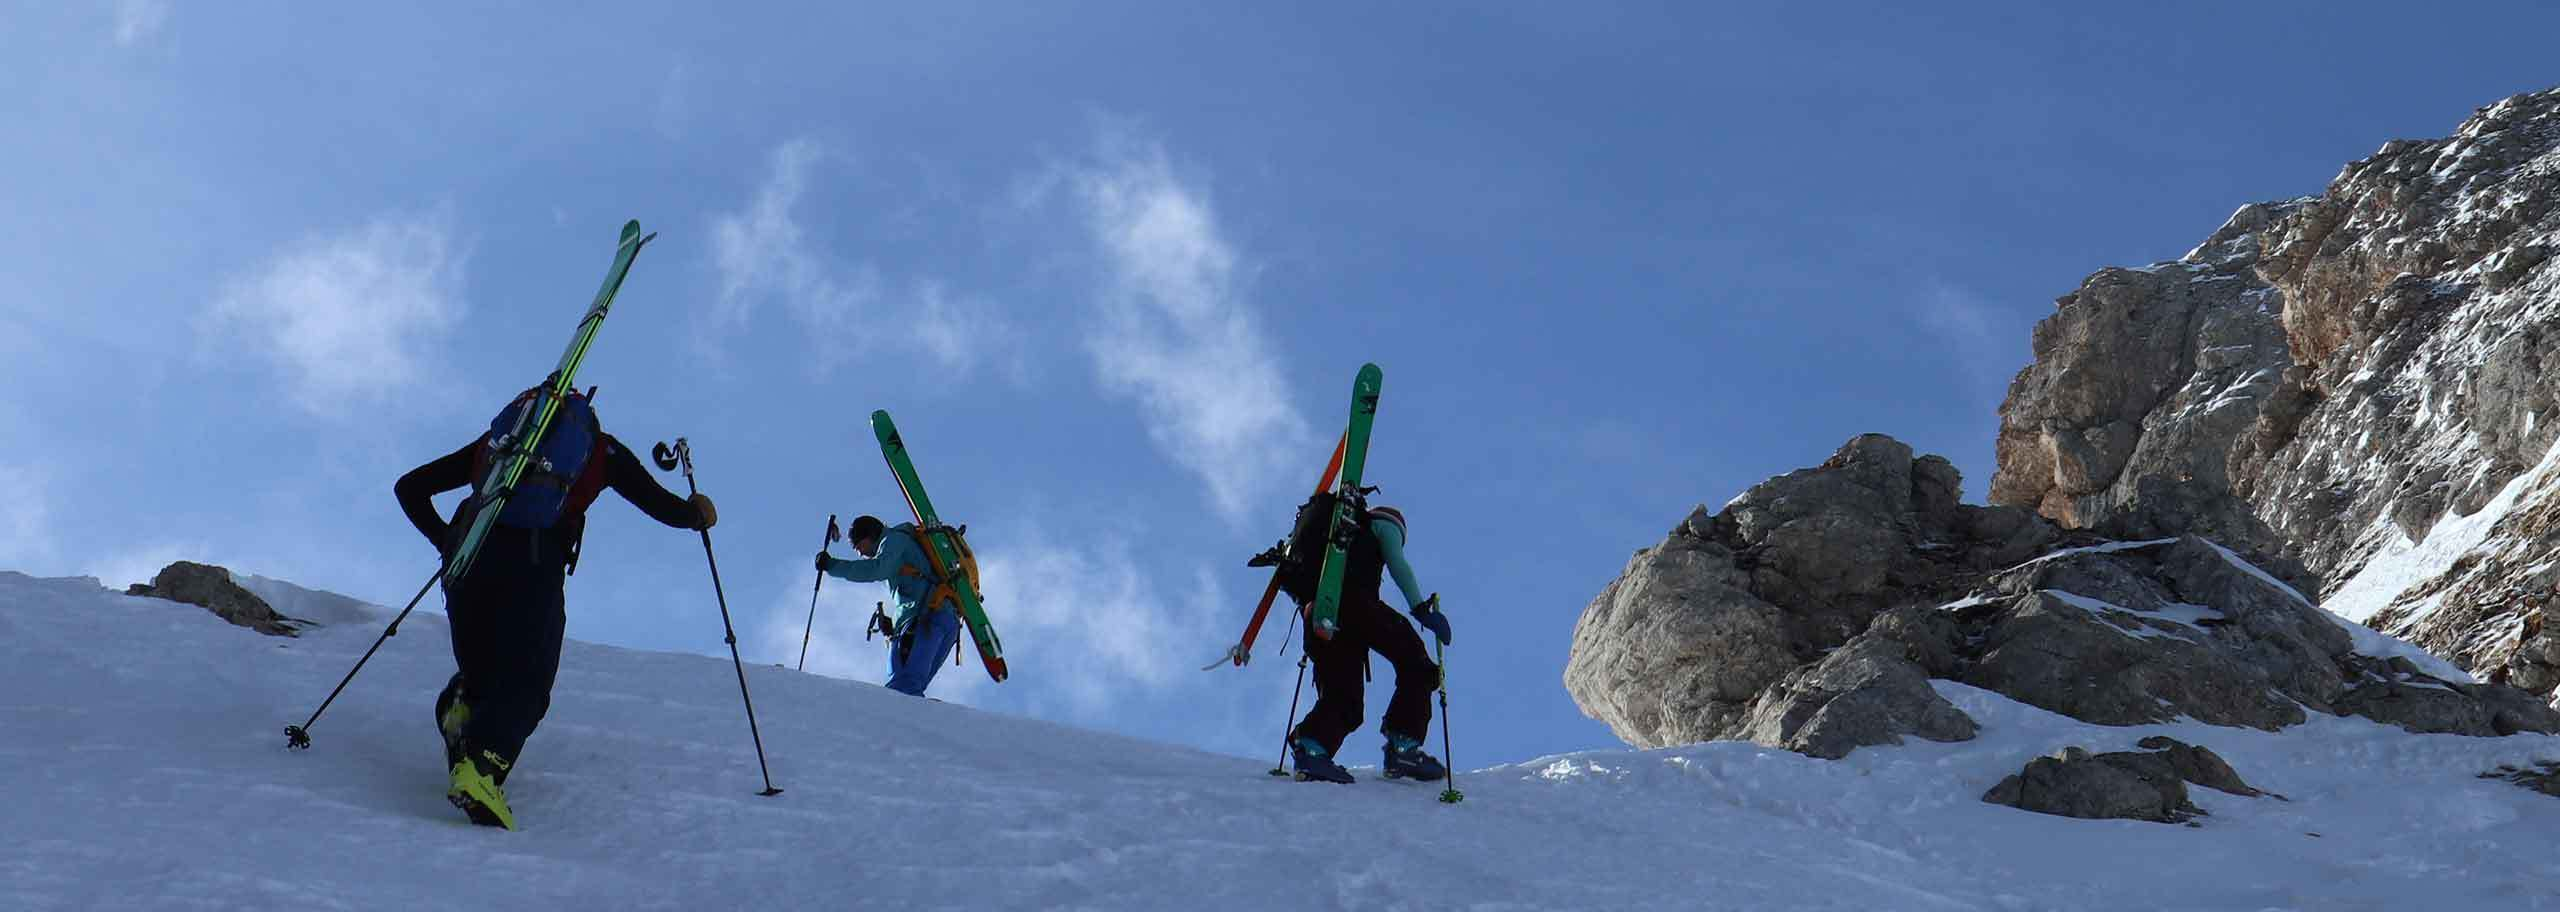 Ski Mountaineering in Sestriere with Mountain Guide